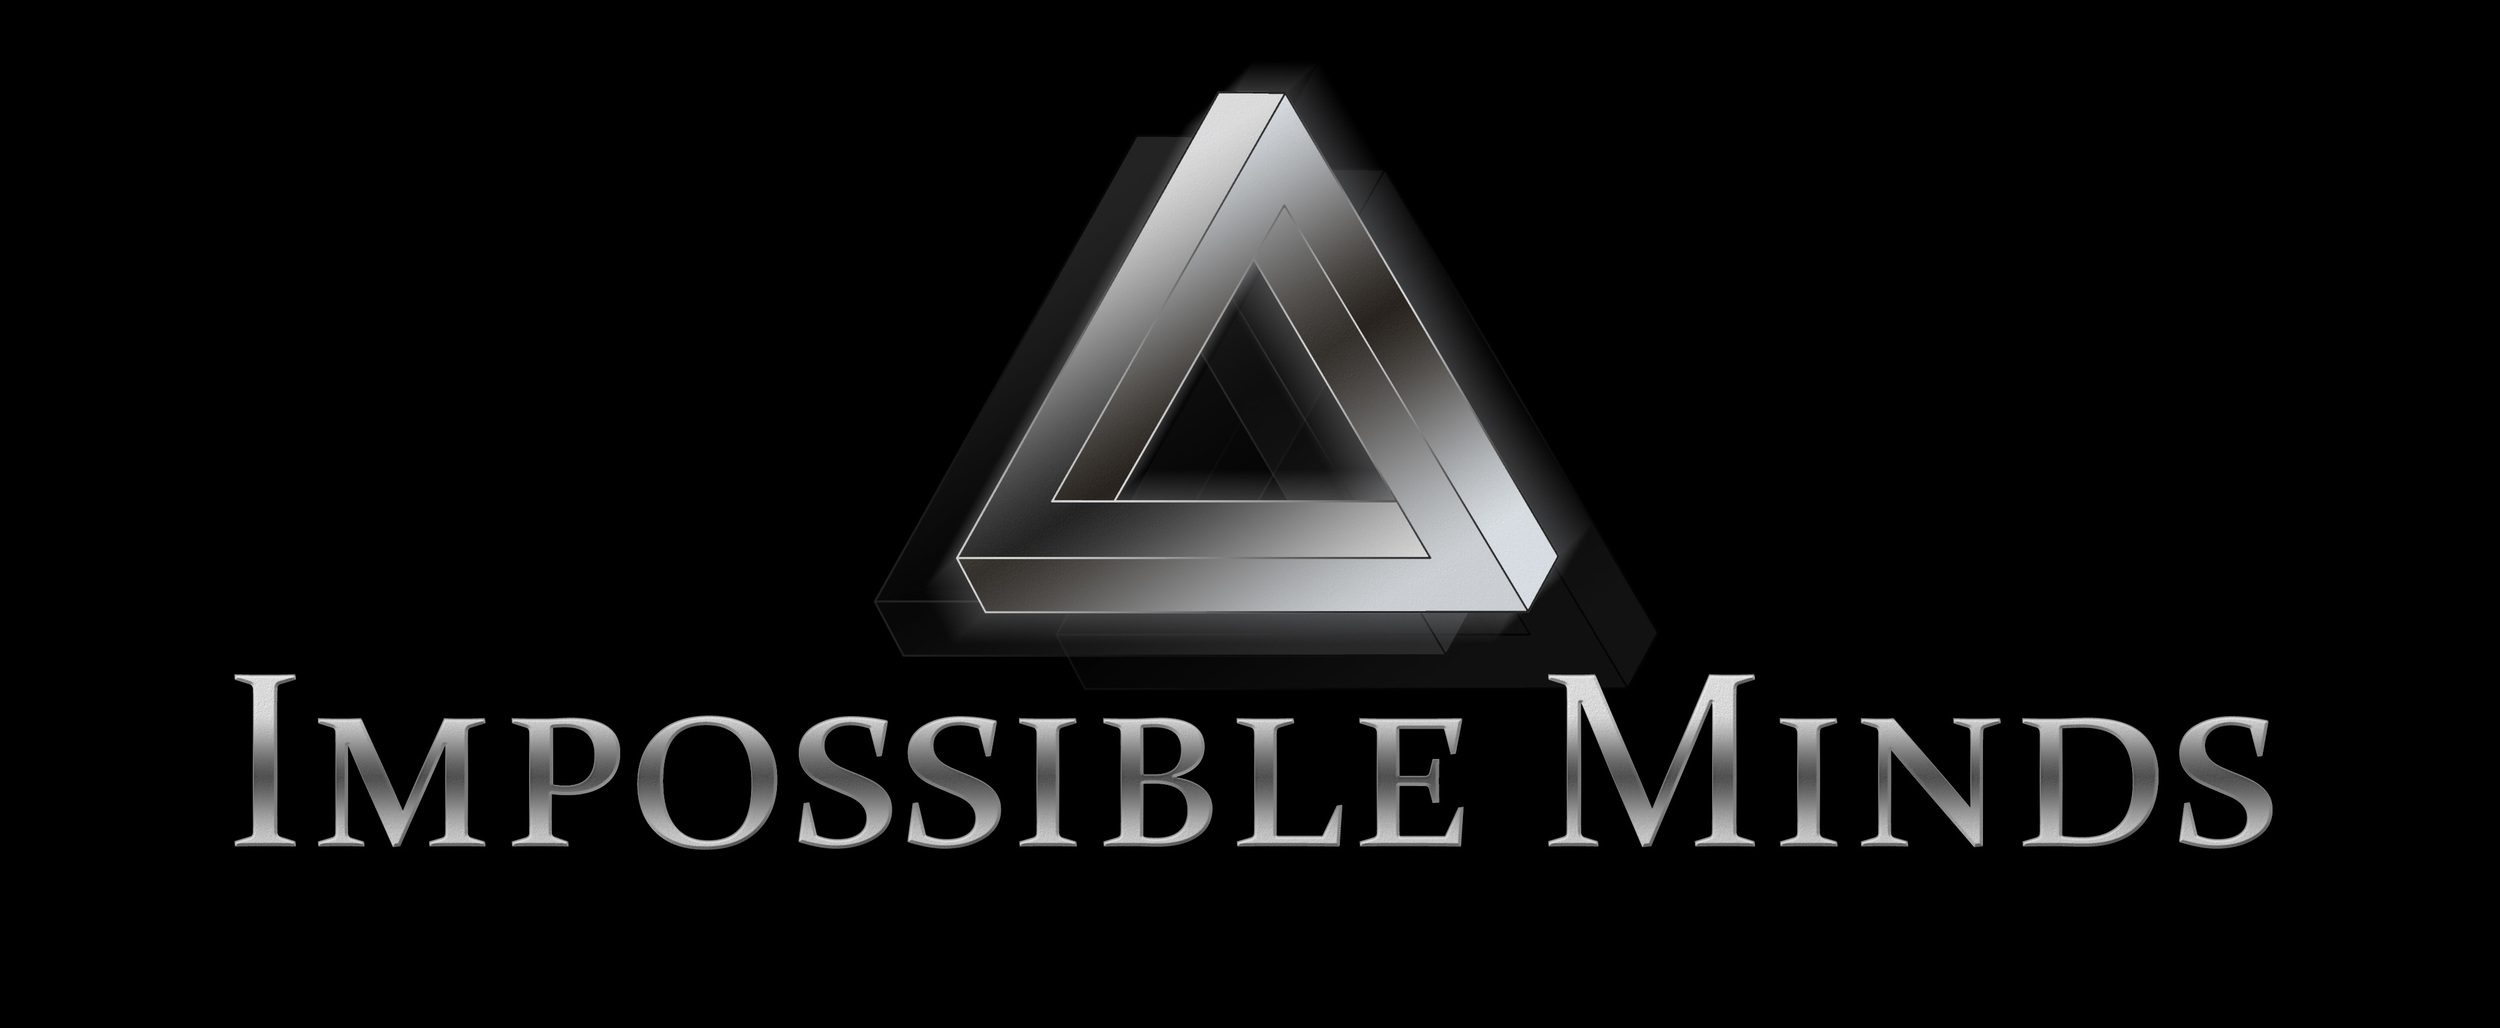 ImpossibleMinds_Logo.jpg